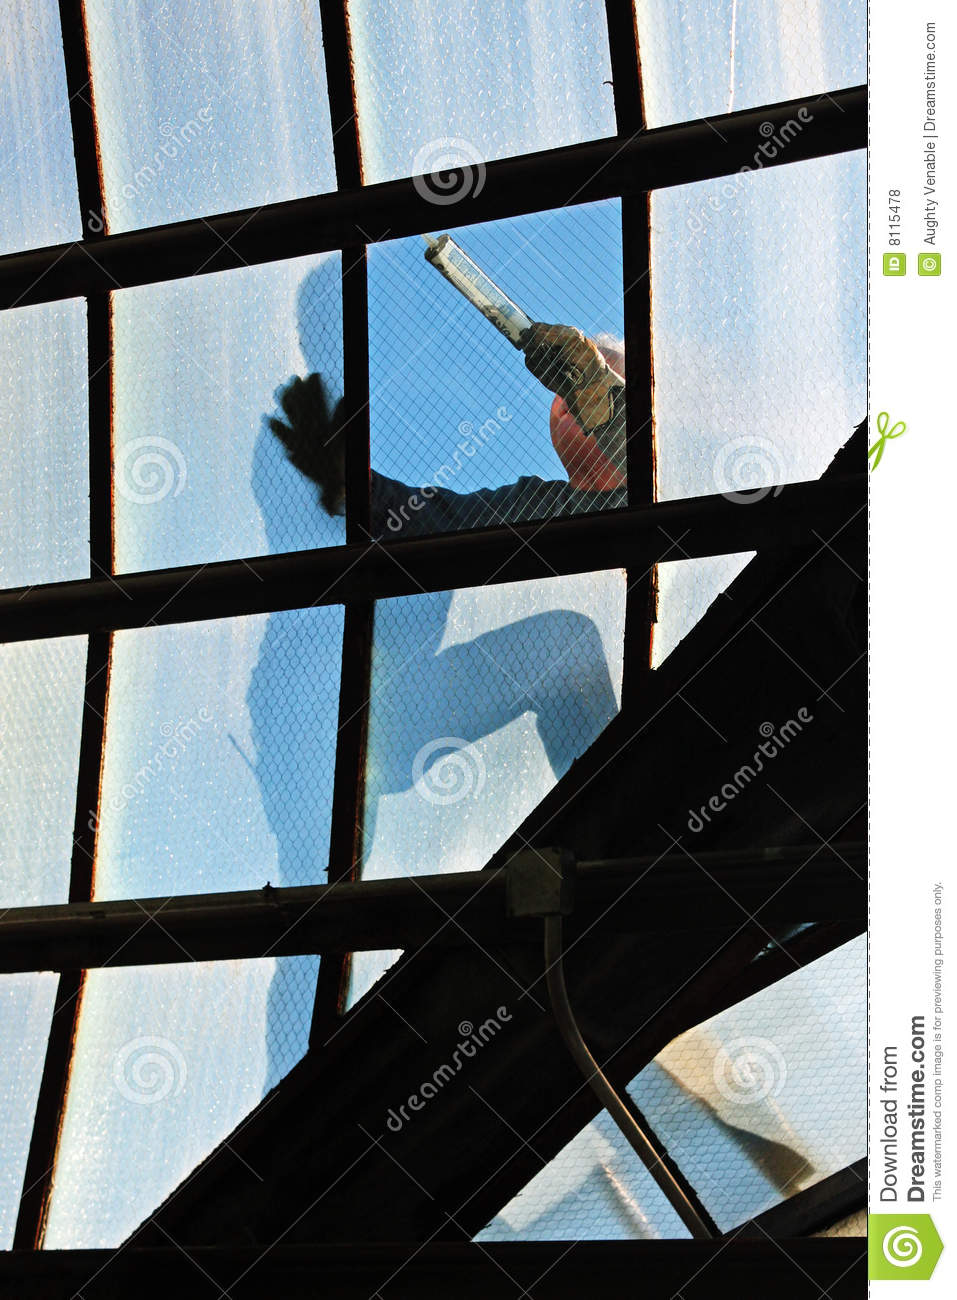 Window repair royalty free stock photos image 8115478 for Window replacement contractor